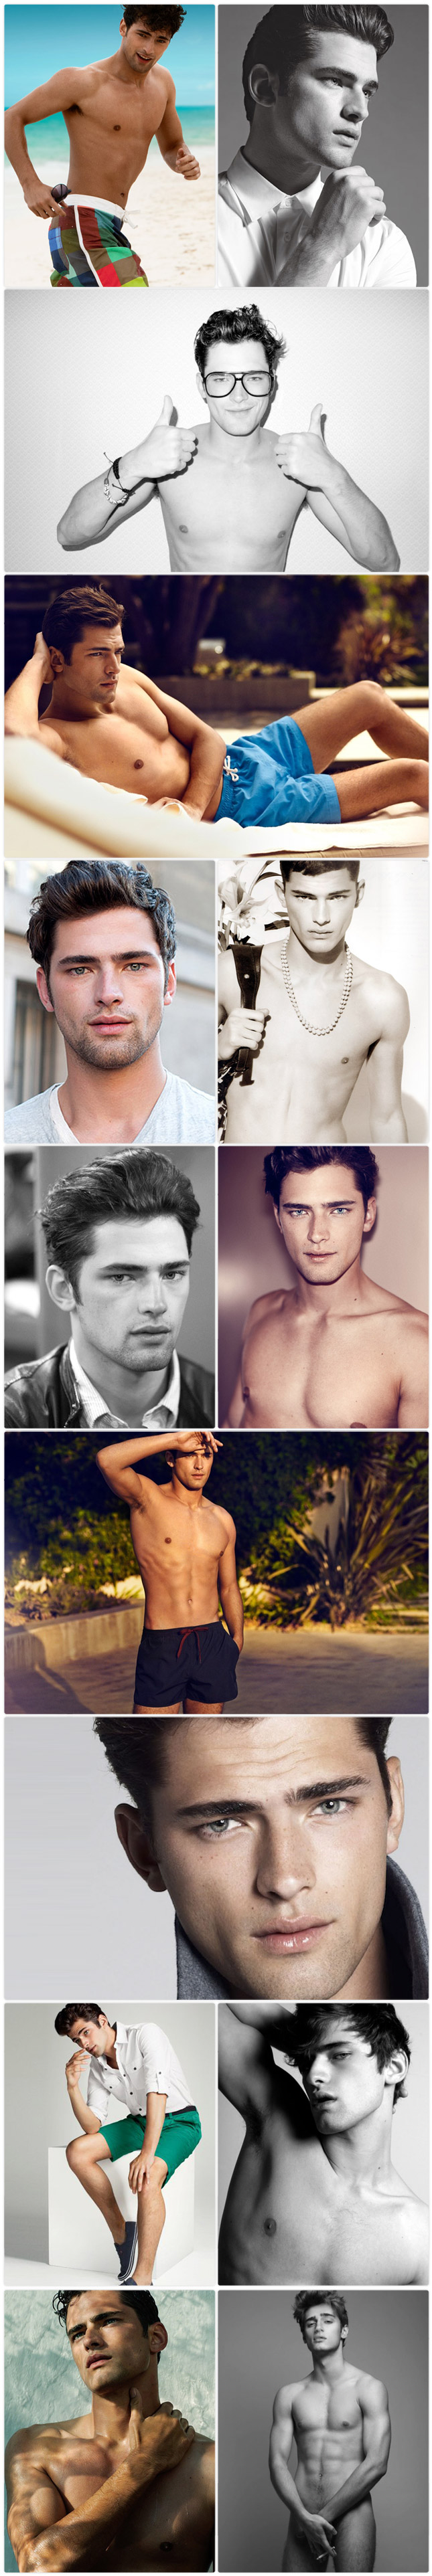 Male model crush of the week: Sean O'Pry